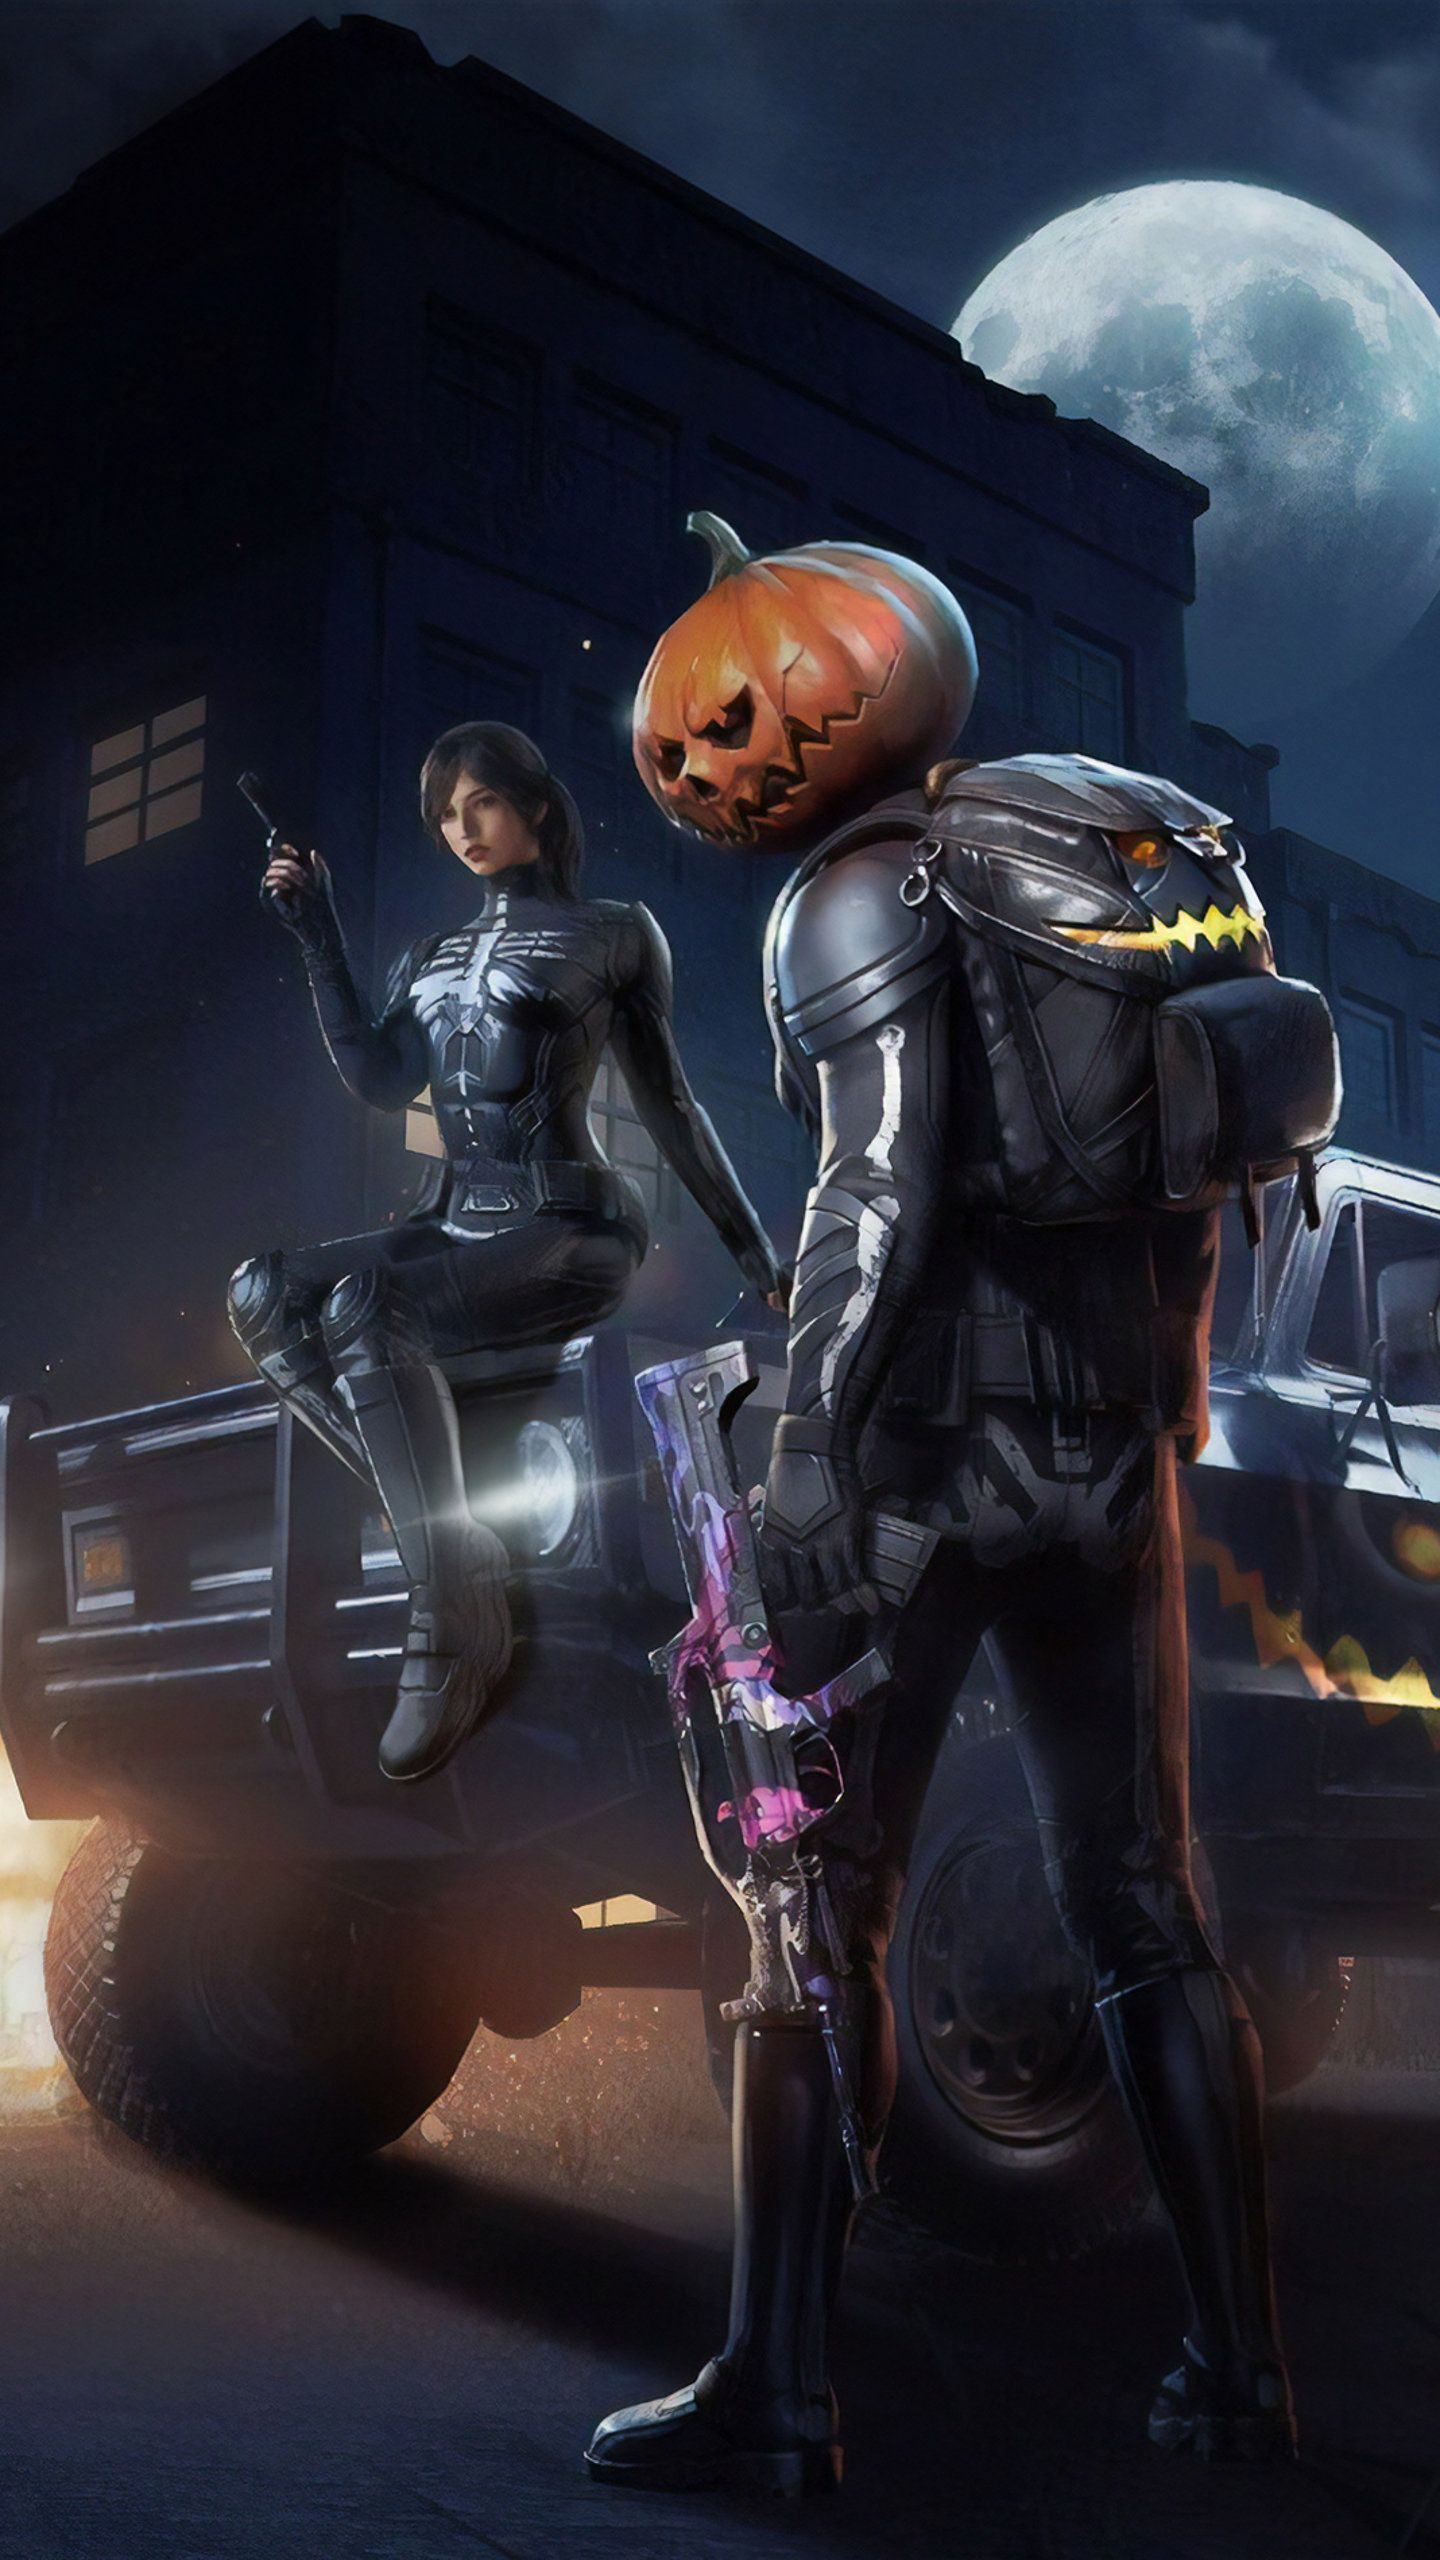 Pubg Halloween Hd Games Wallpapers Photos And Pictures Id 44162 Dark Wallpaper Iphone Laptop Wallpaper Game Wallpaper Iphone